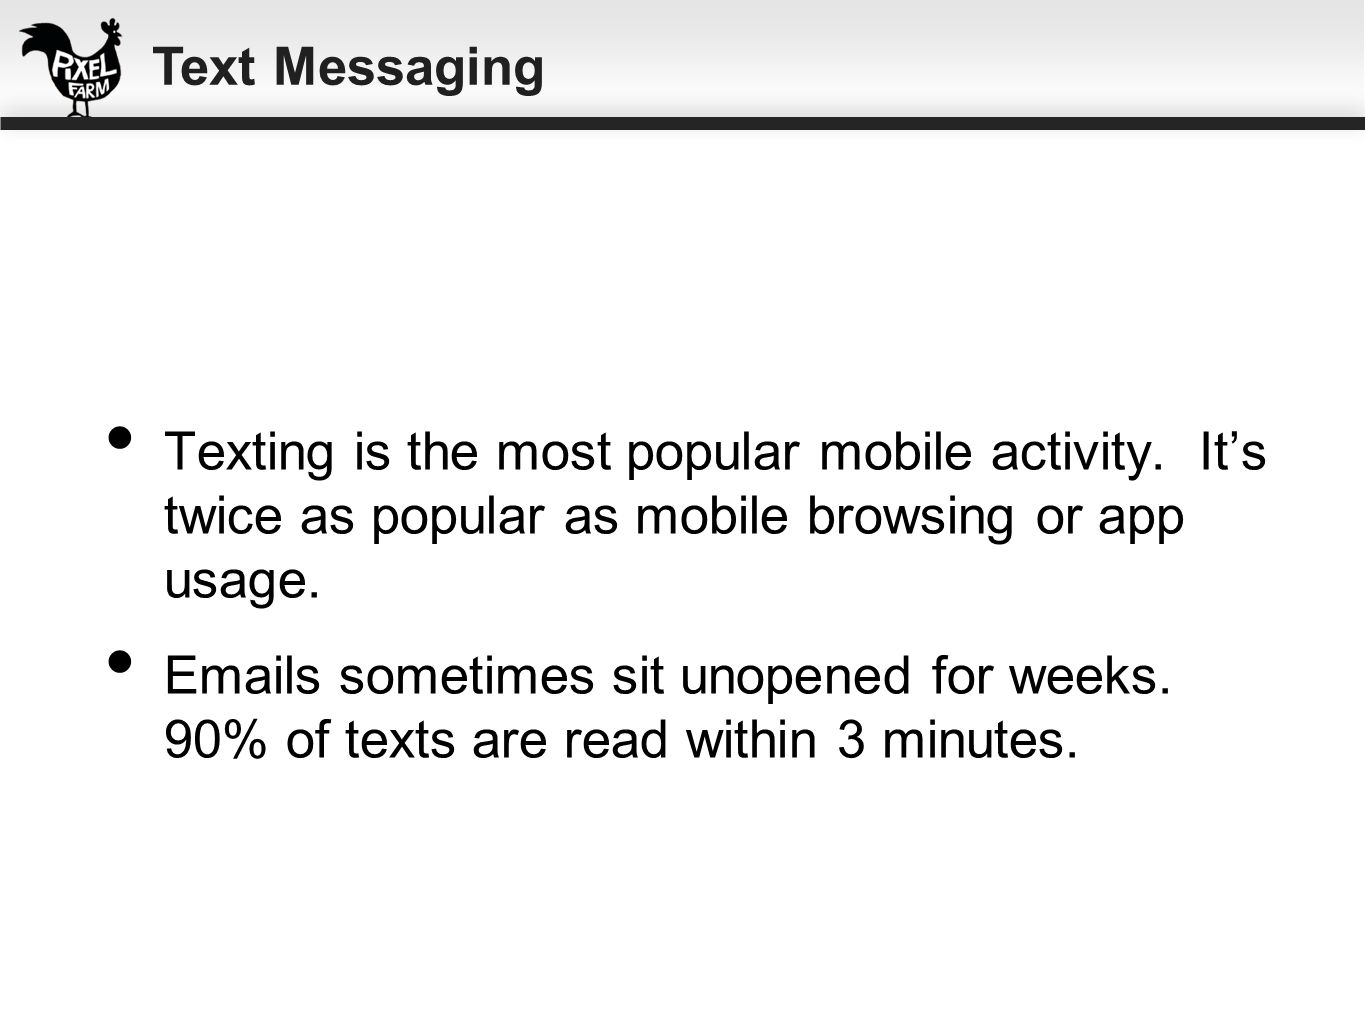 Text Messaging Texting is the most popular mobile activity. It's twice as popular as mobile browsing or app usage.